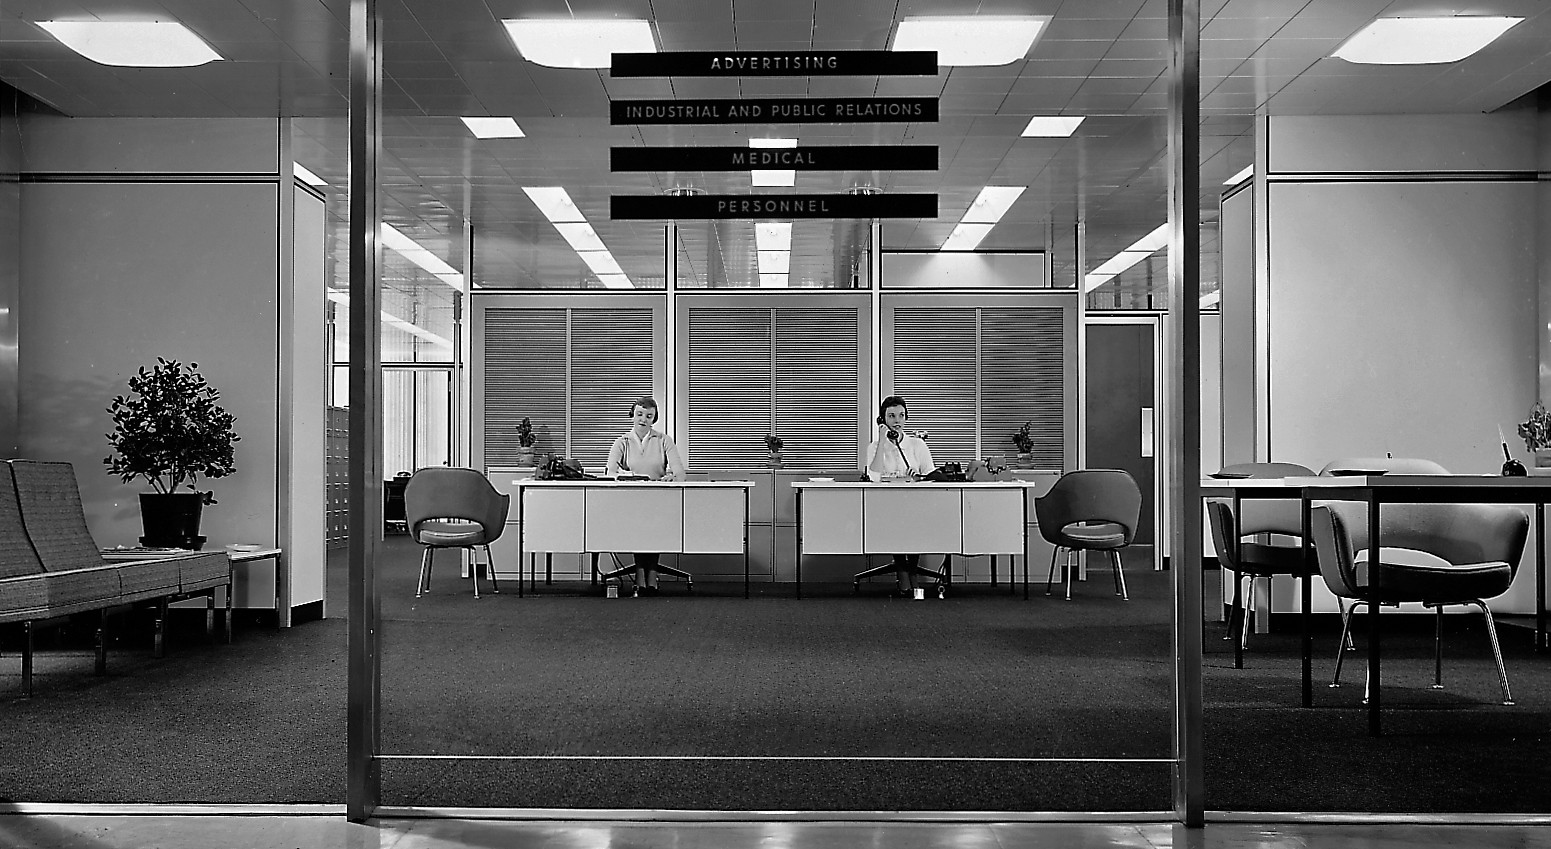 Interior of the inland steel building designed by som circa 1959 photo hedrich blessing